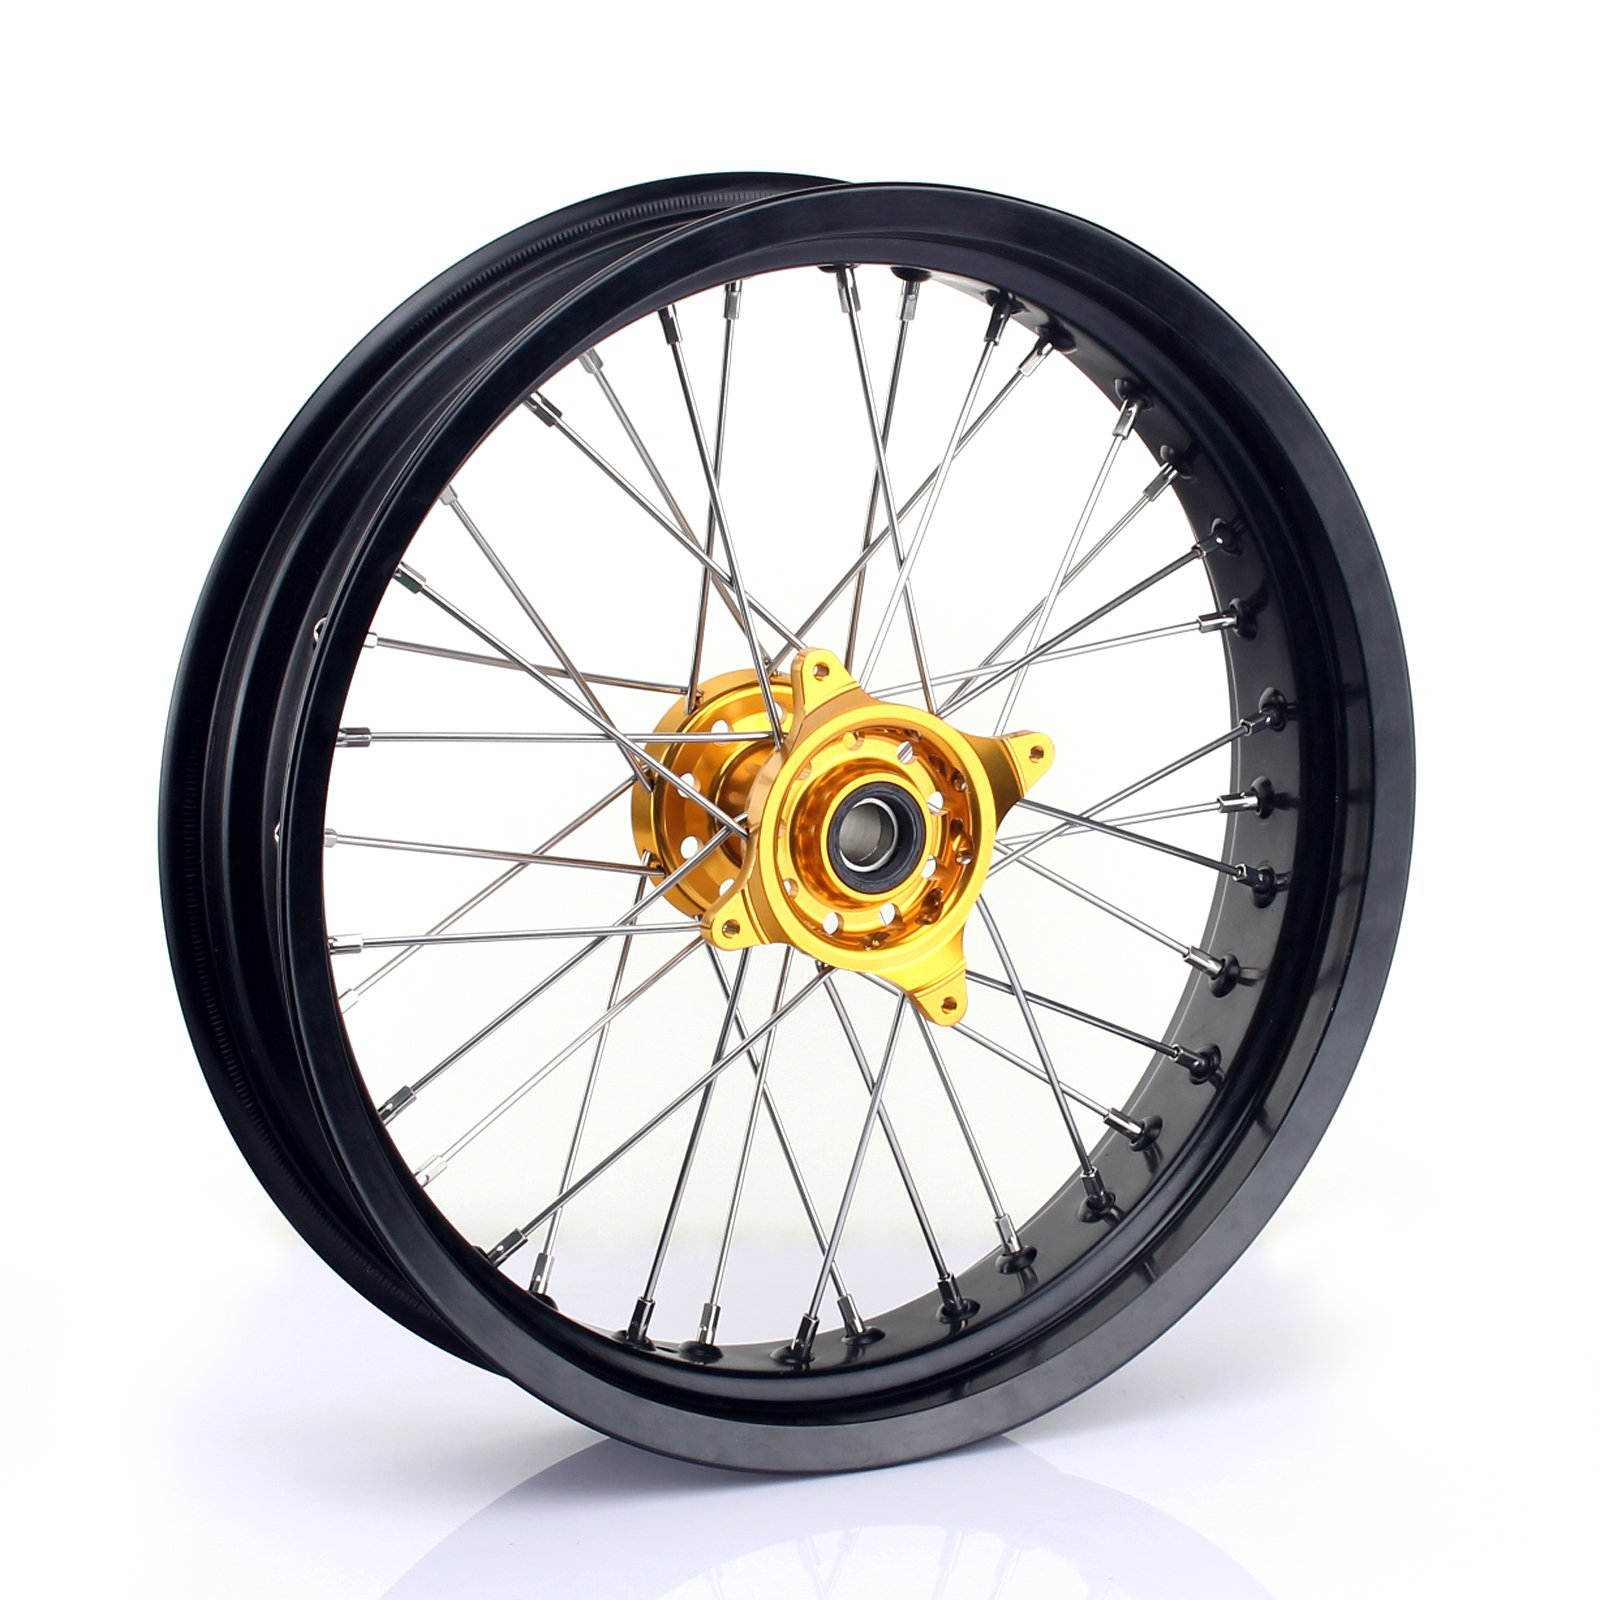 TARAZON 17x3.5 Supermoto Front Complete Wheel Kit Rim Spokes Gold Hub for Suzuki RMZ250 2007-2016 RMZ450 2005-2016